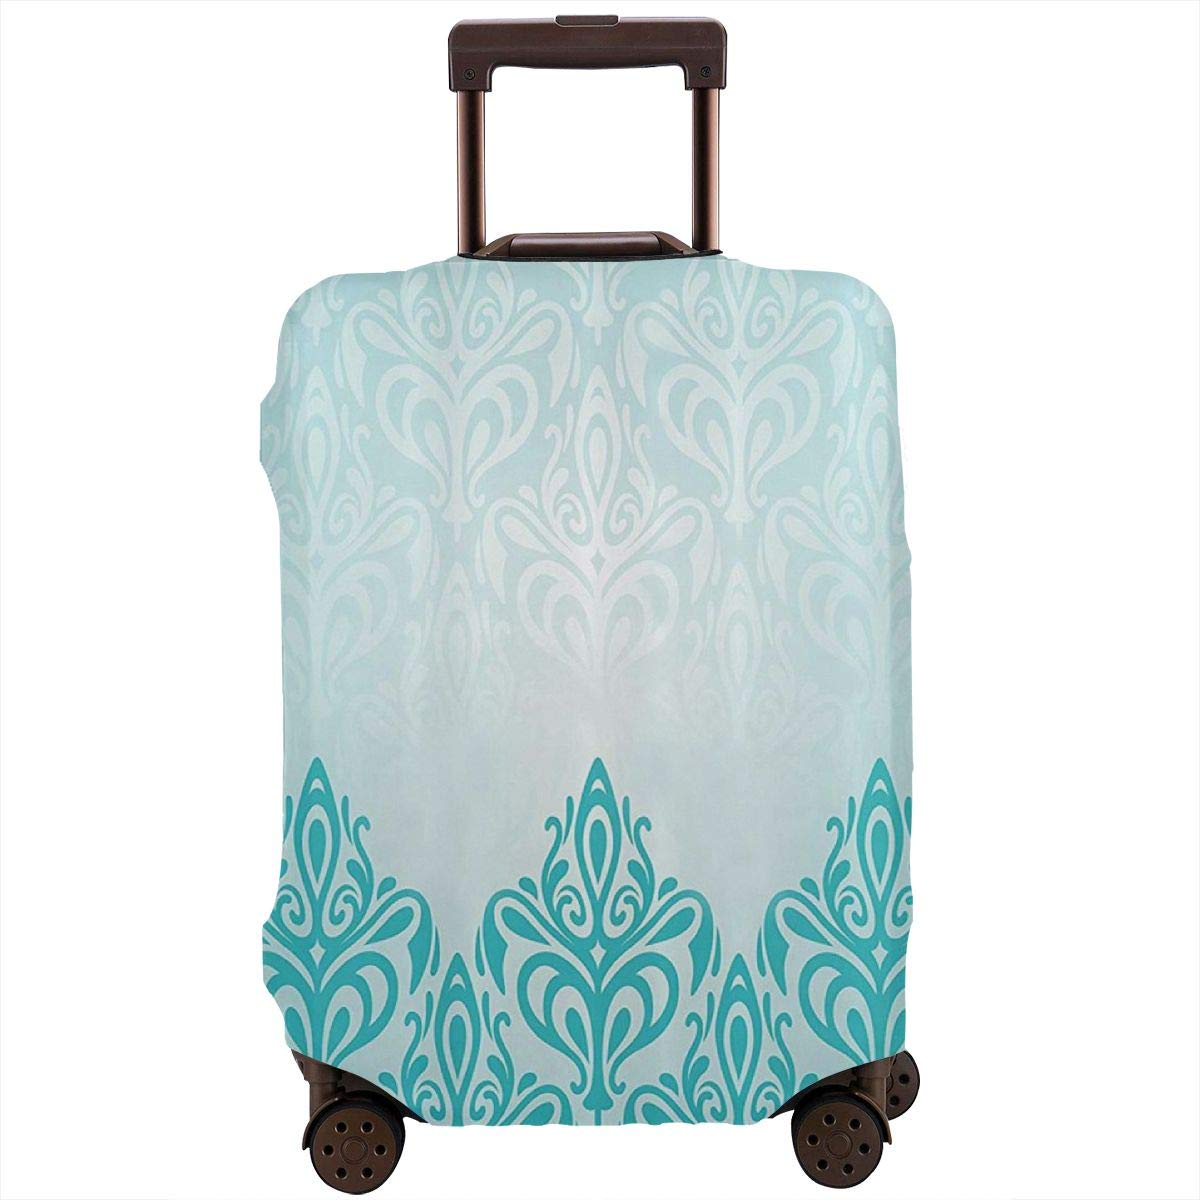 Luggage Cover Turquoise Retro Medieval European Gradient Protective Travel Trunk Case Elastic Luggage Suitcase Protector Cover